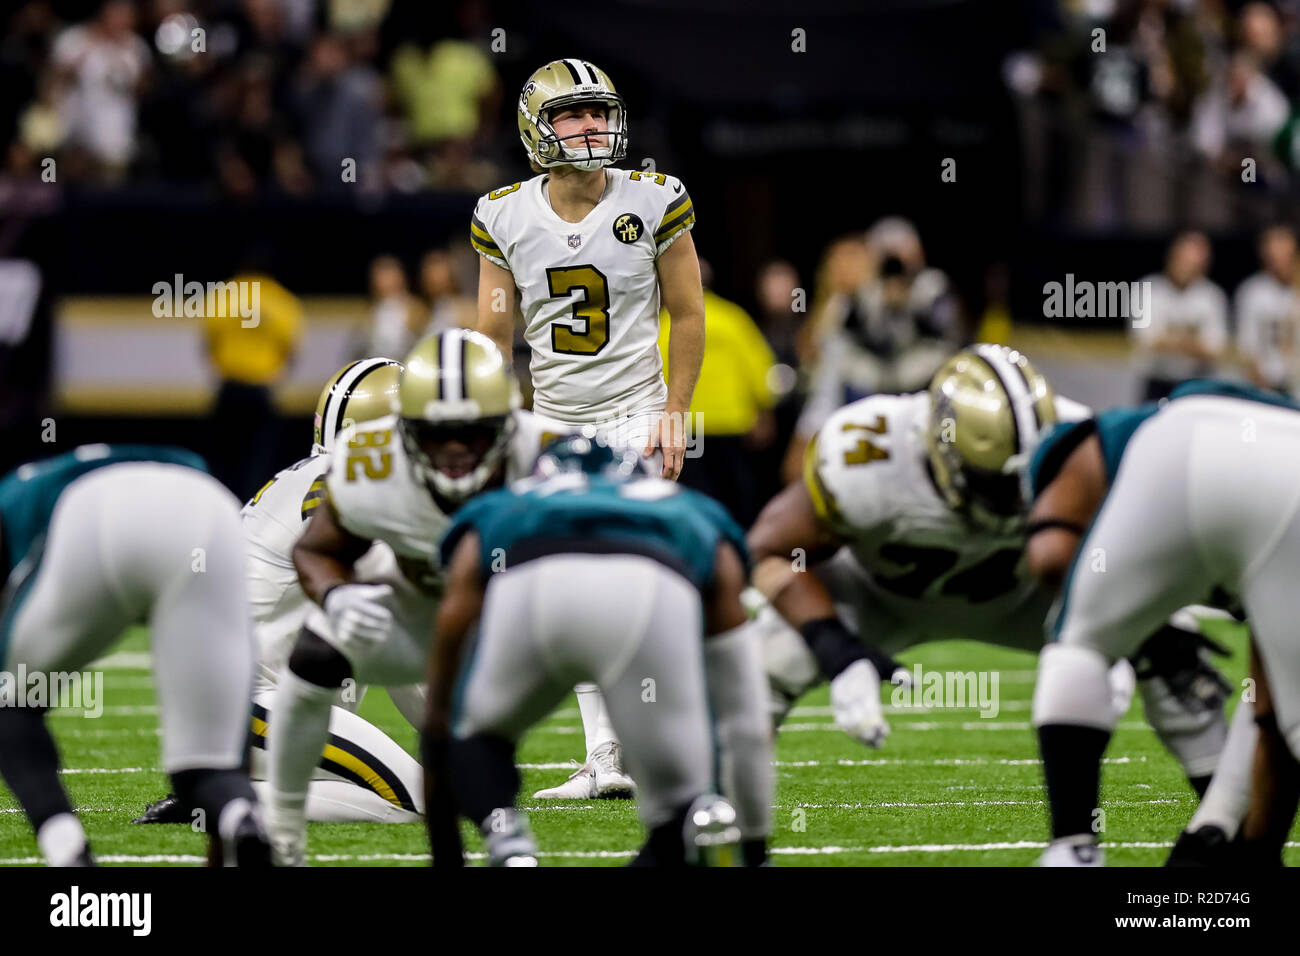 New Orleans Saints kicker Wil Lutz (3) looks on against the Philadelphia  Eagles at the Mercedes-Benz Superdome in New Orleans c30b04aeb